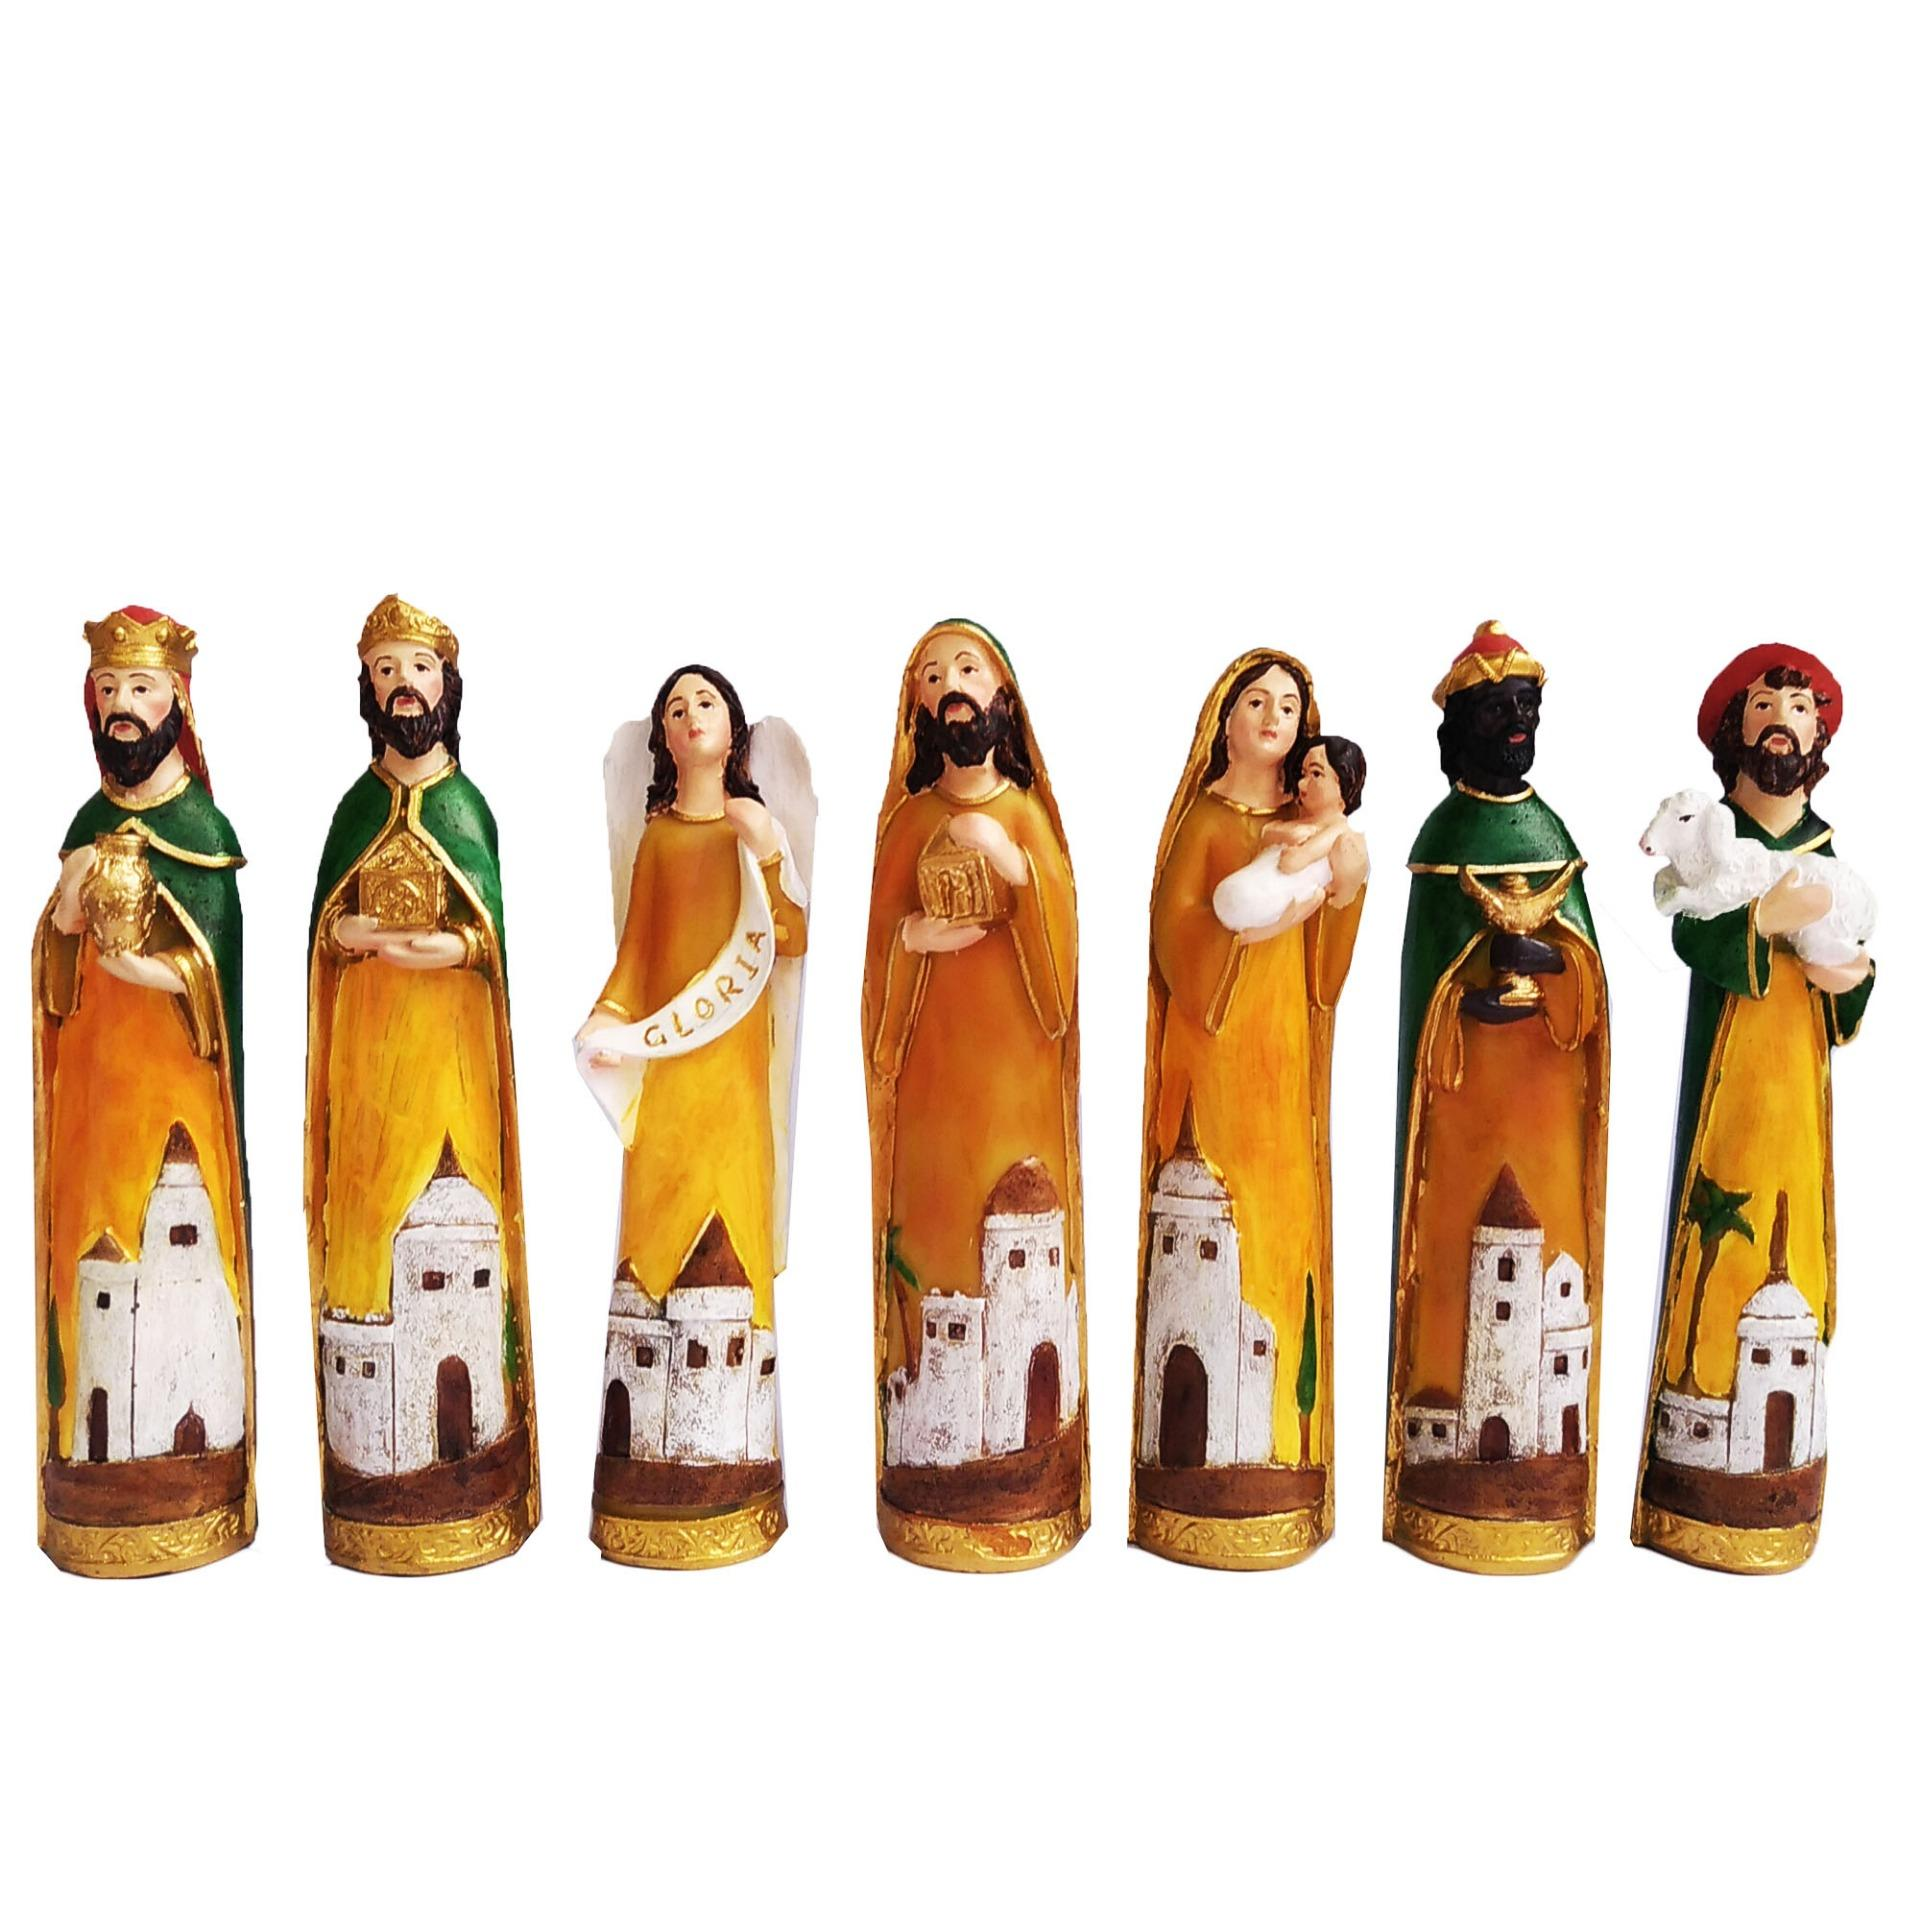 Set of 7 Mexican Style Nativity Scene figurine for Christmas with (Jesus,Saint St. Joseph, Blessed Virgin Mary, 3 Kings) Religious Item - thumbnail